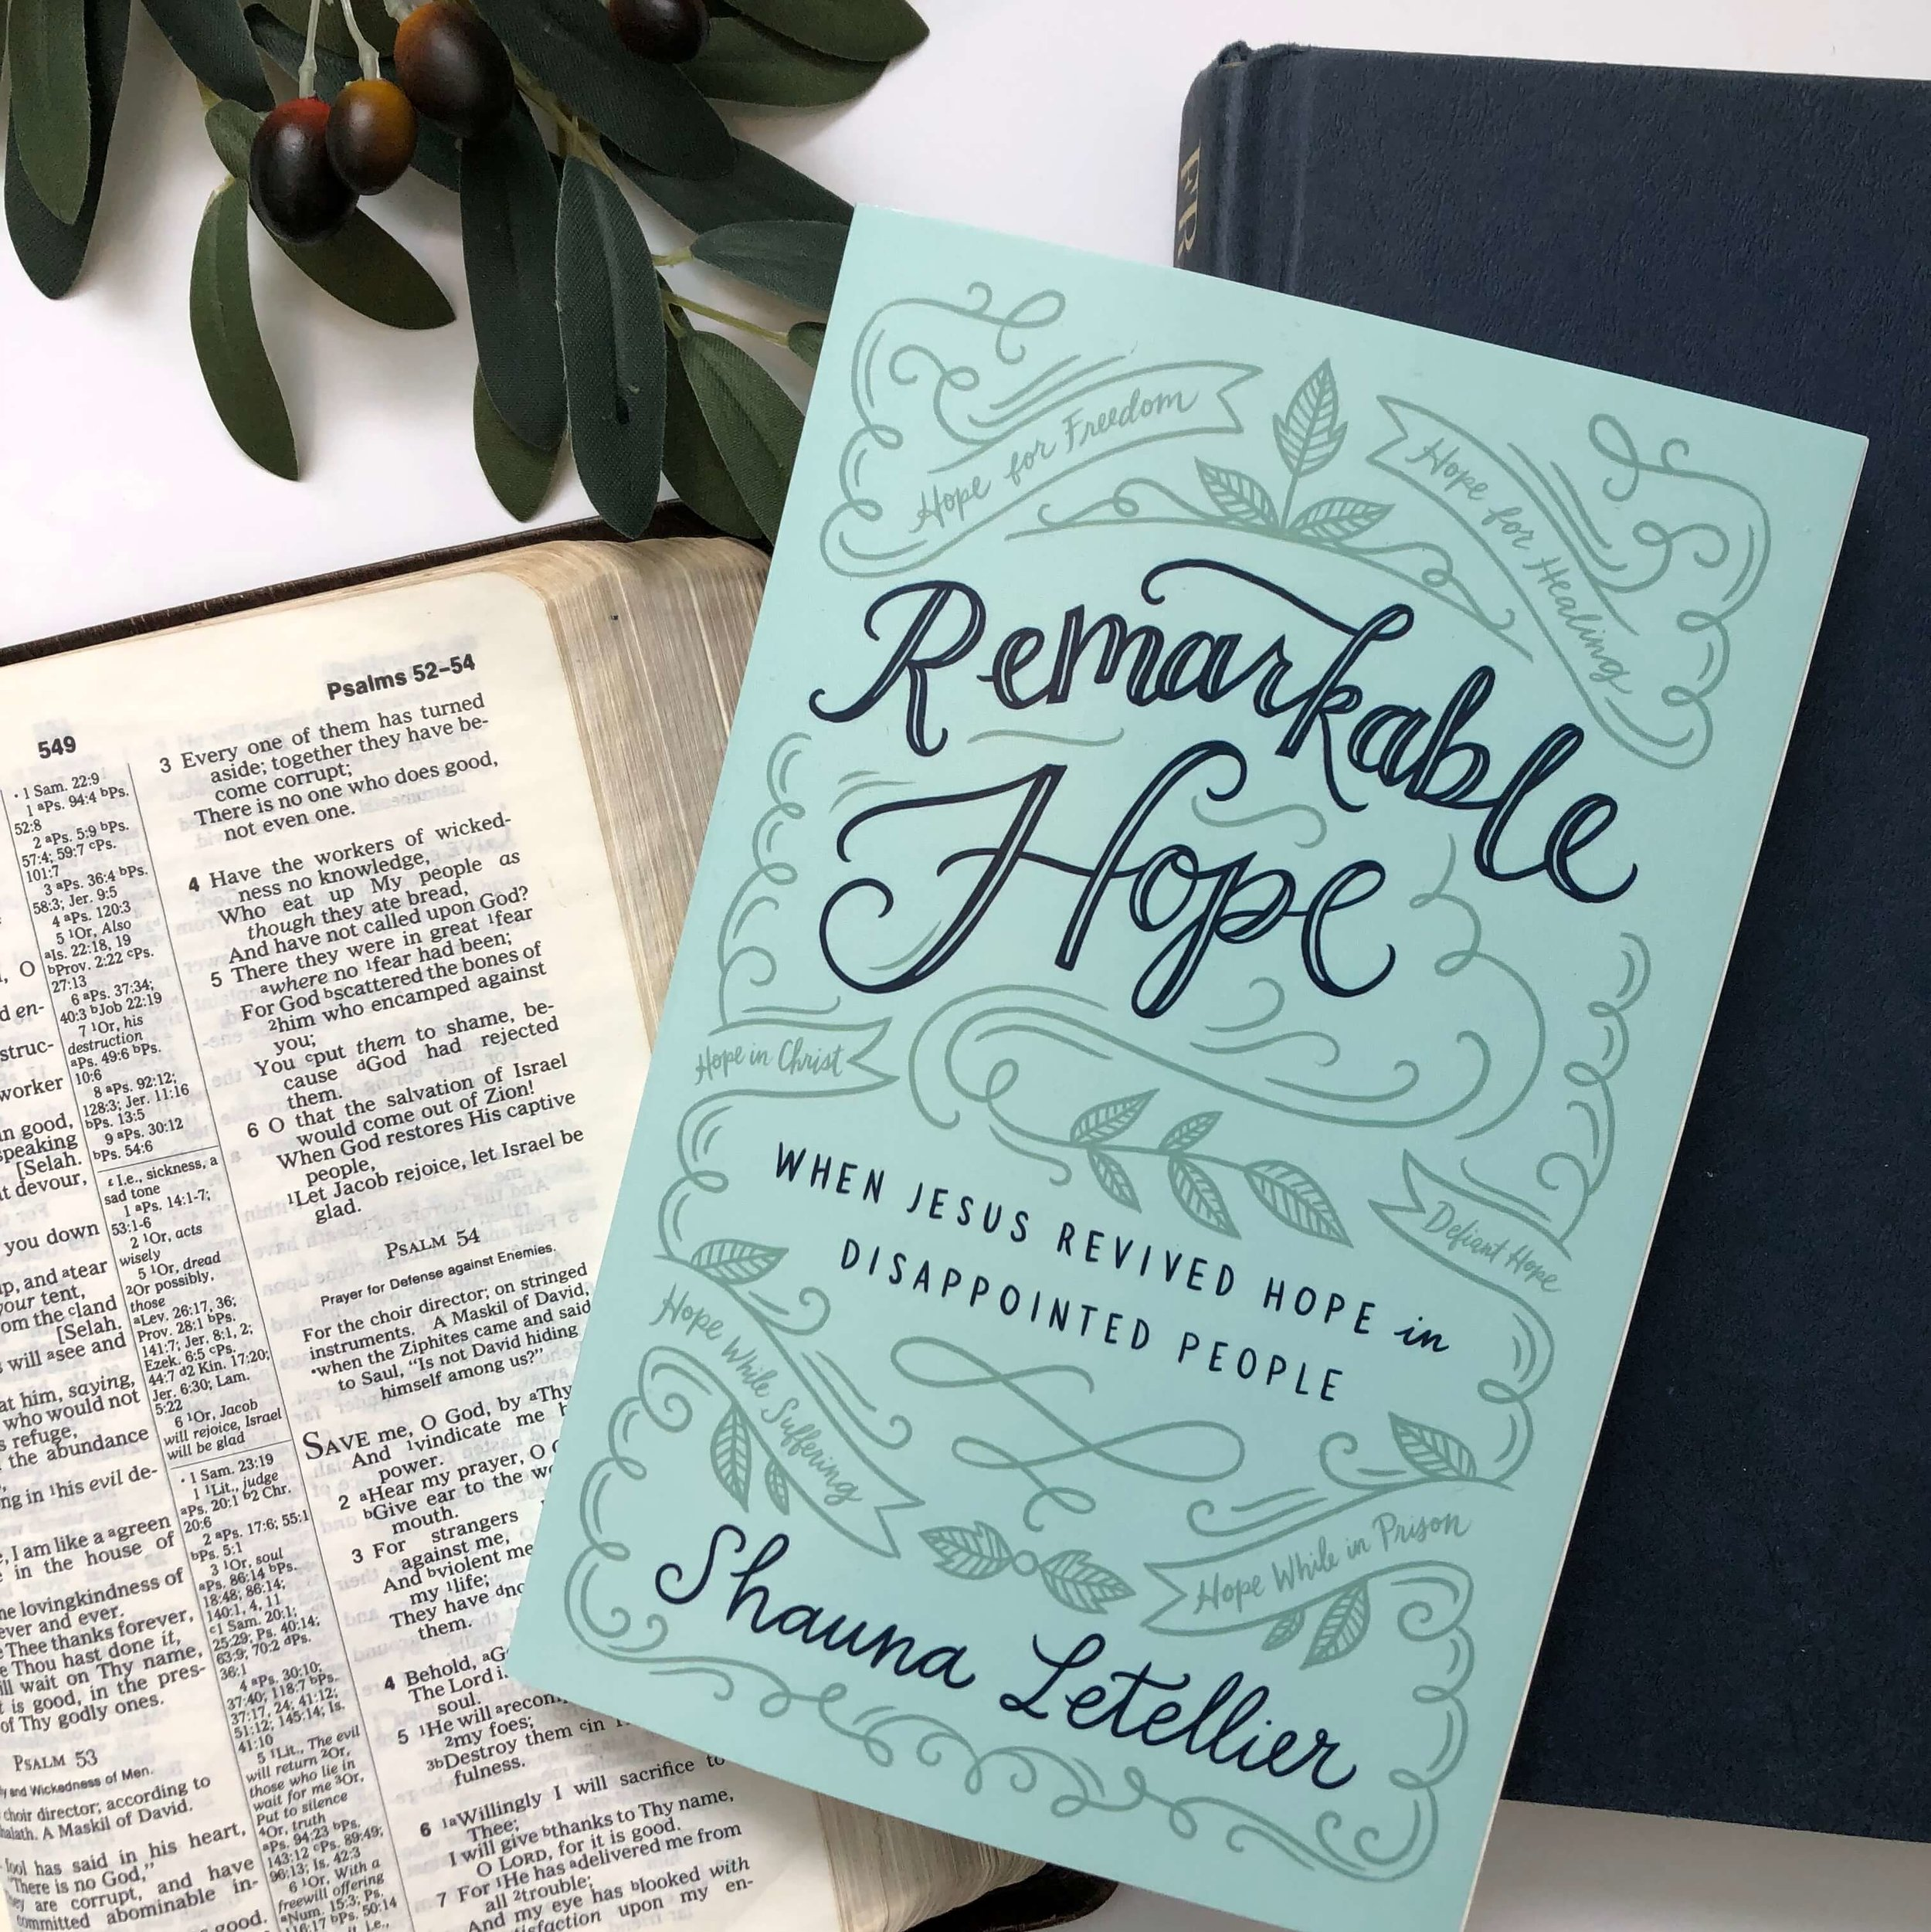 remarkable hope book shauna letellier